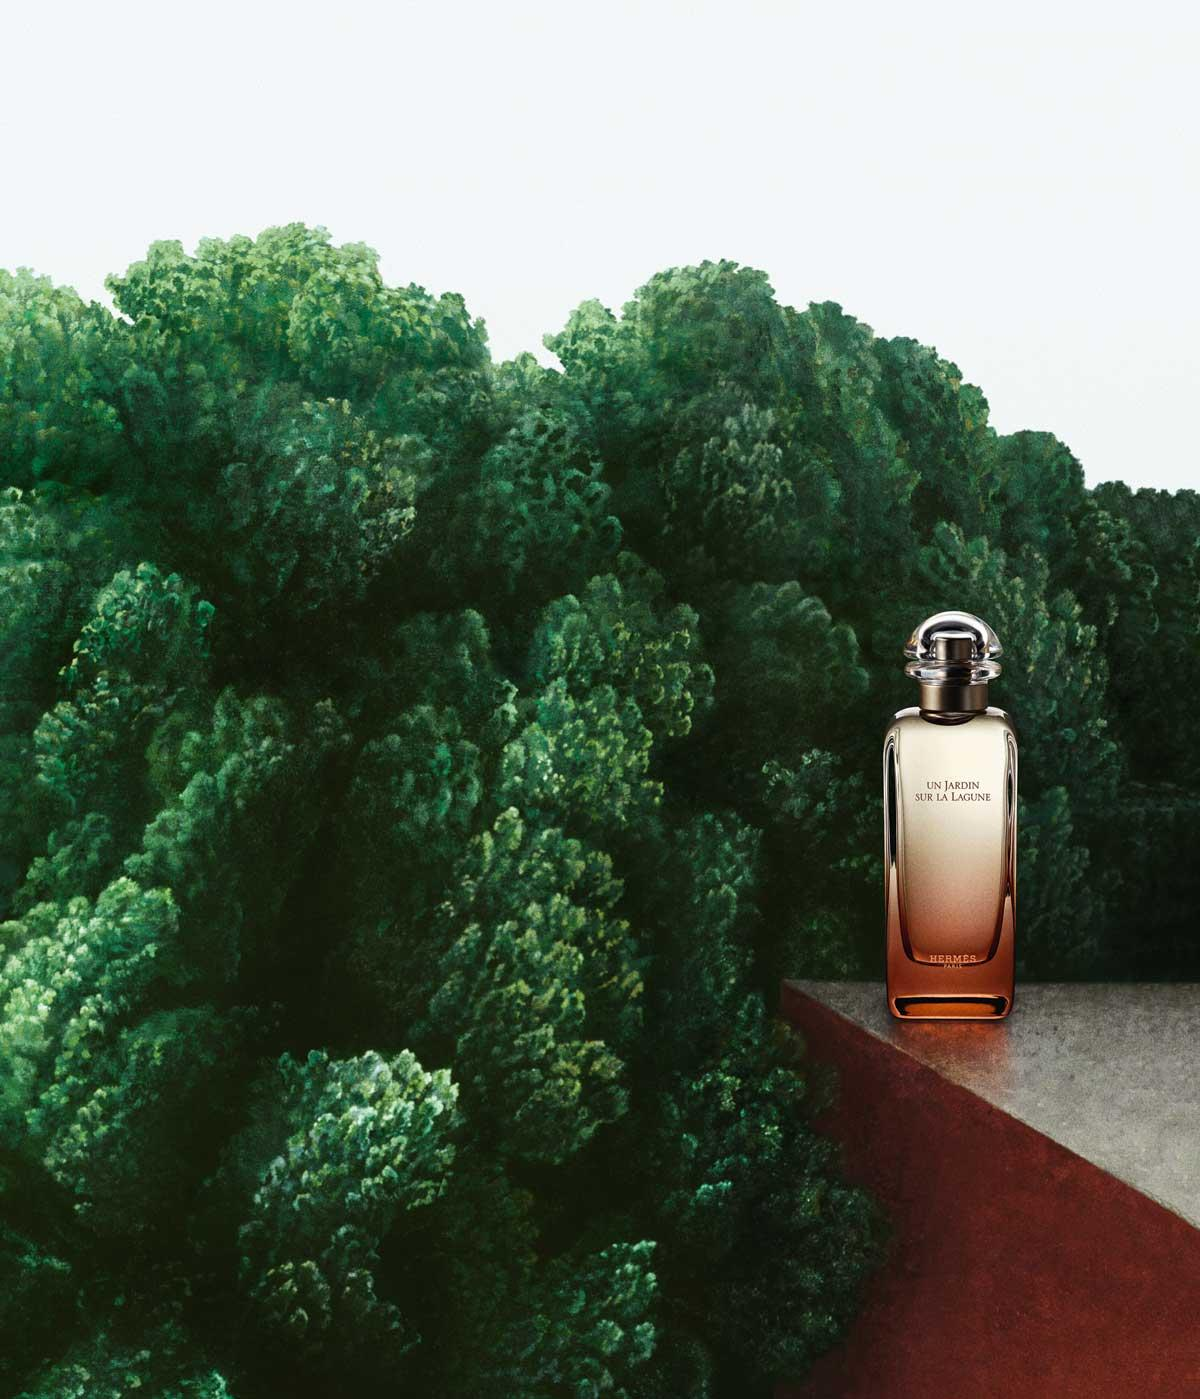 Hermes Jardin Fragrance launch, studio image